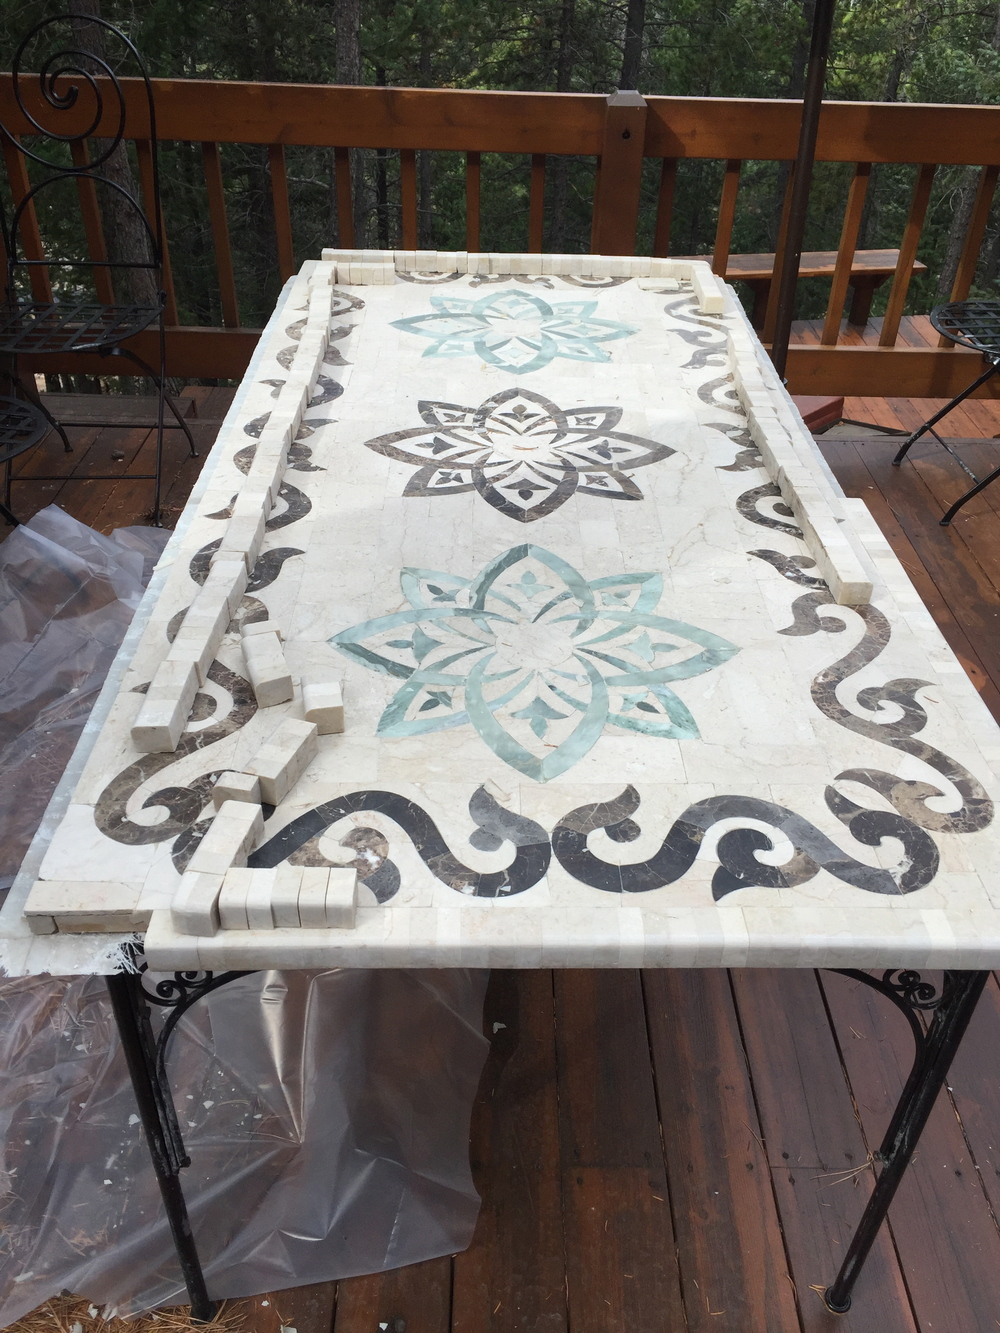 This table from Morocco was almost replaced. The resin along the edges  cracked due to the  extreme temperatures and the weight of heavy snow during a winter above 8500 ft. The marble was repaired and restored using a cold setting epoxy resin and diamond polished to a glossy finish.